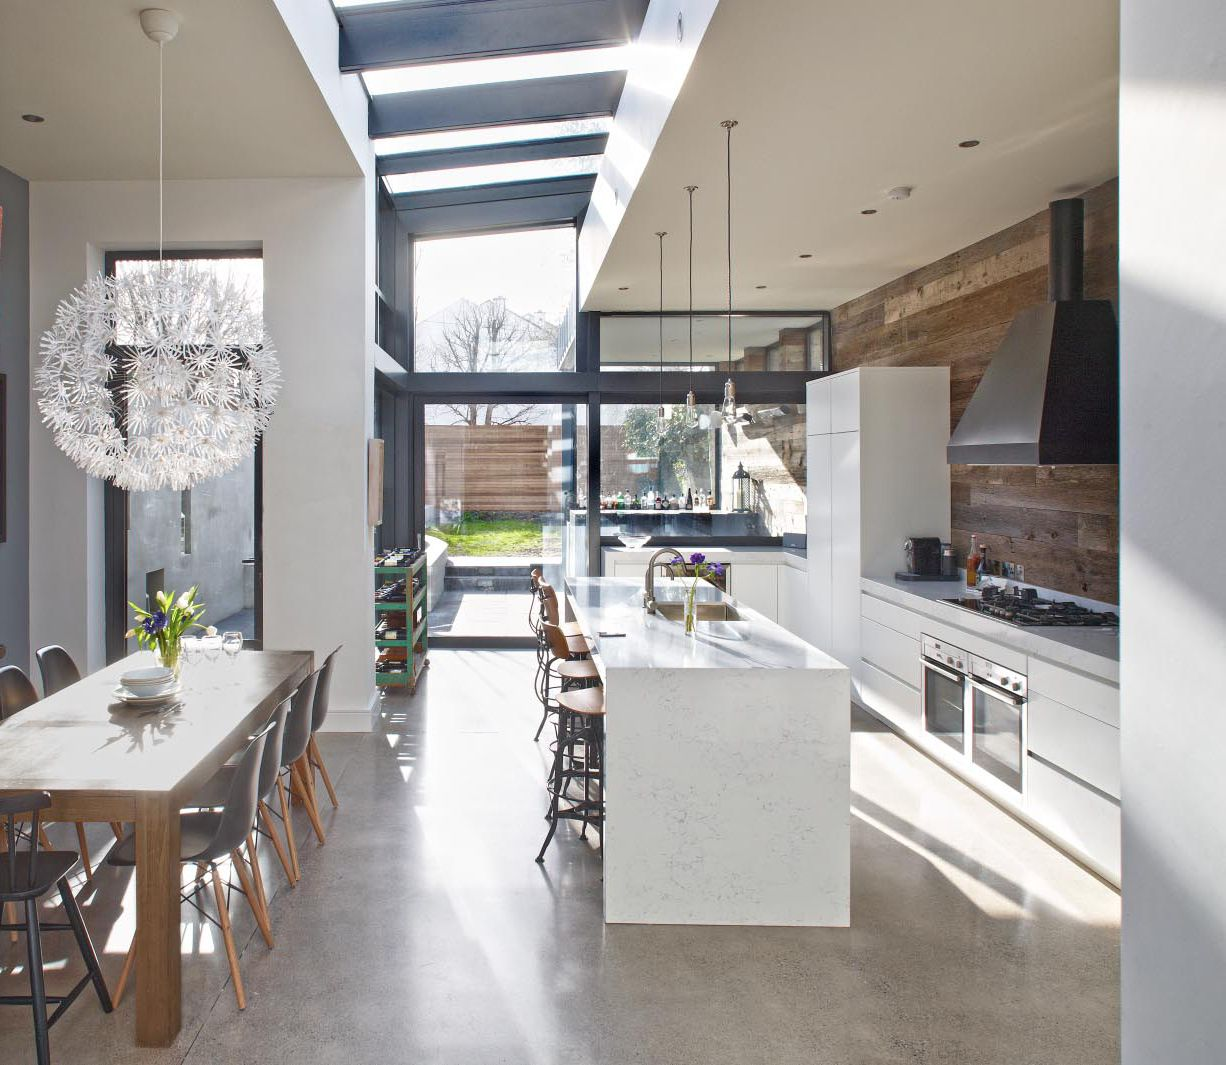 This project involved the complete refurbishment extension and